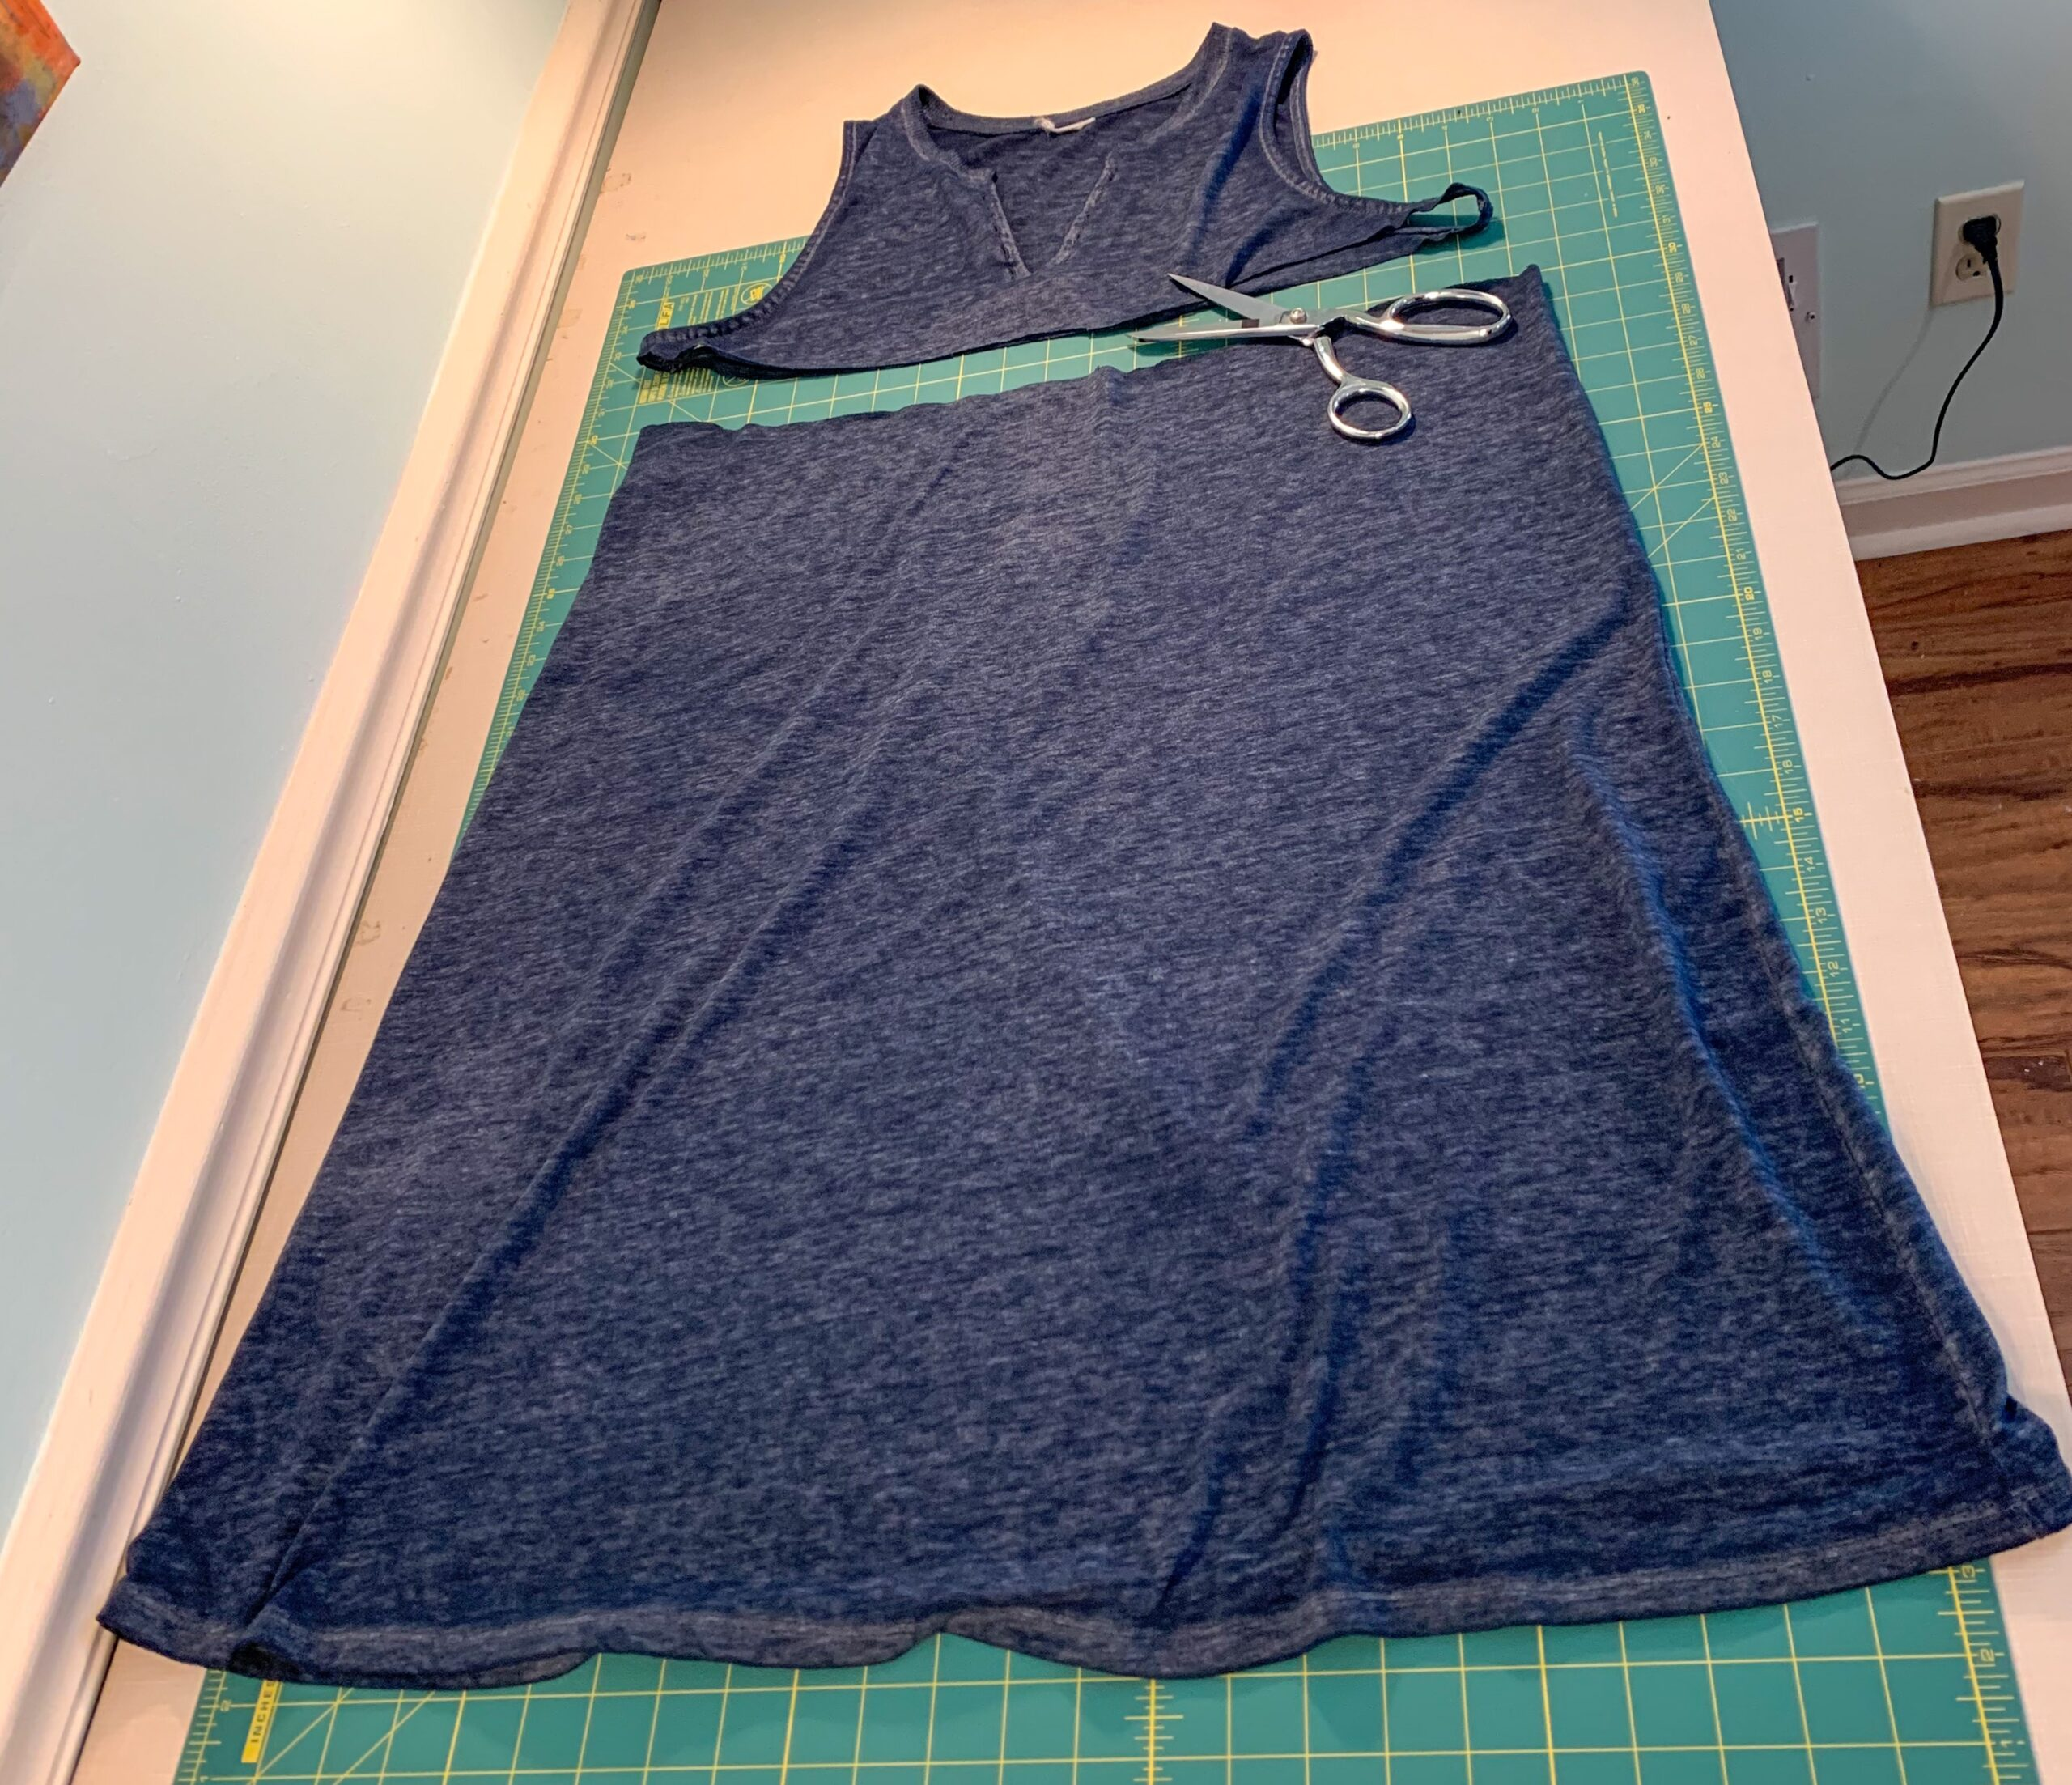 removed bottom of dress